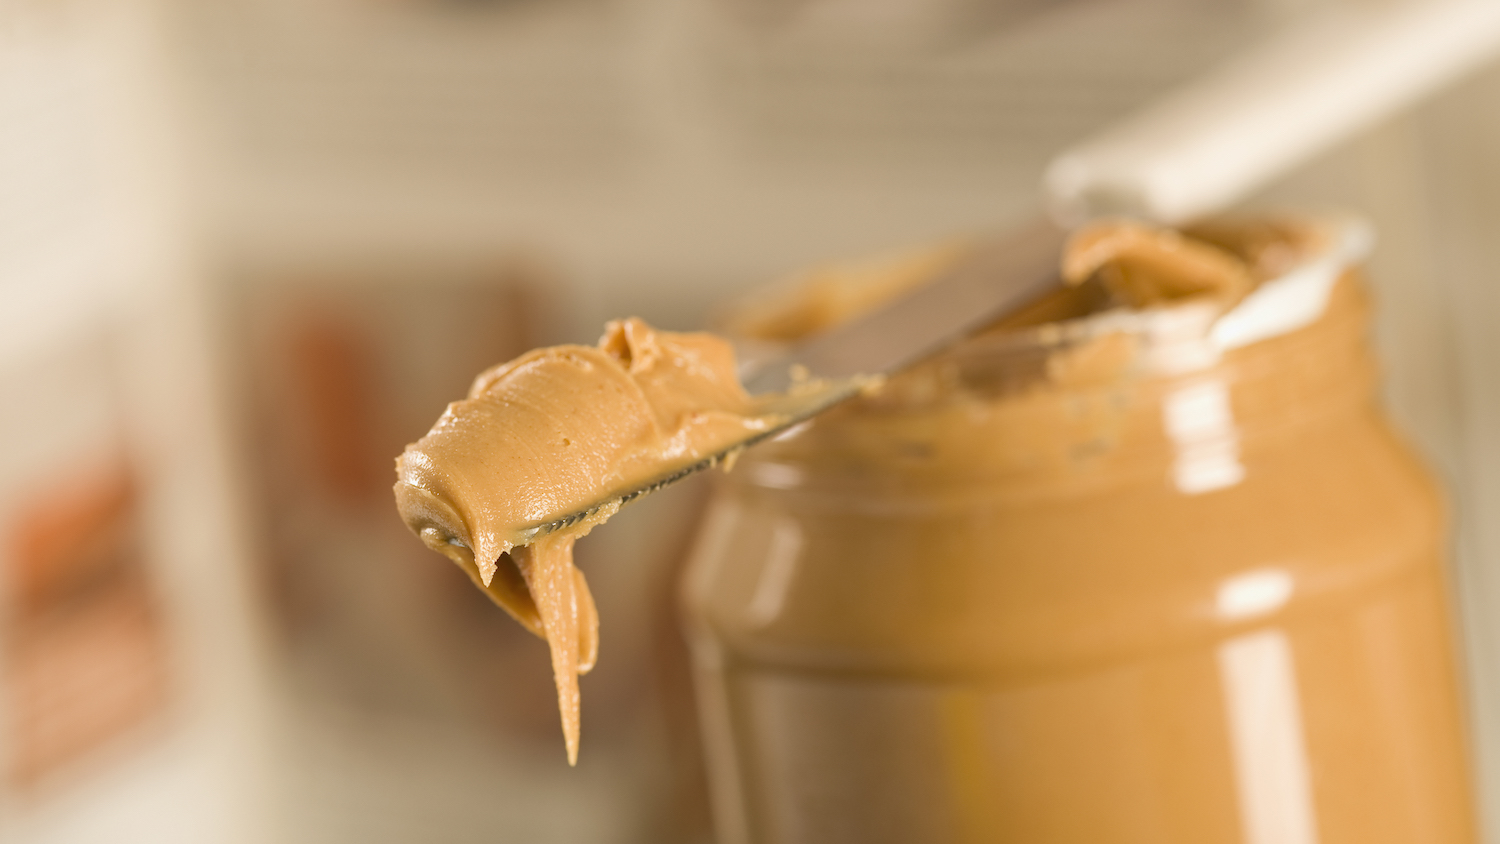 Peanut butter convicts